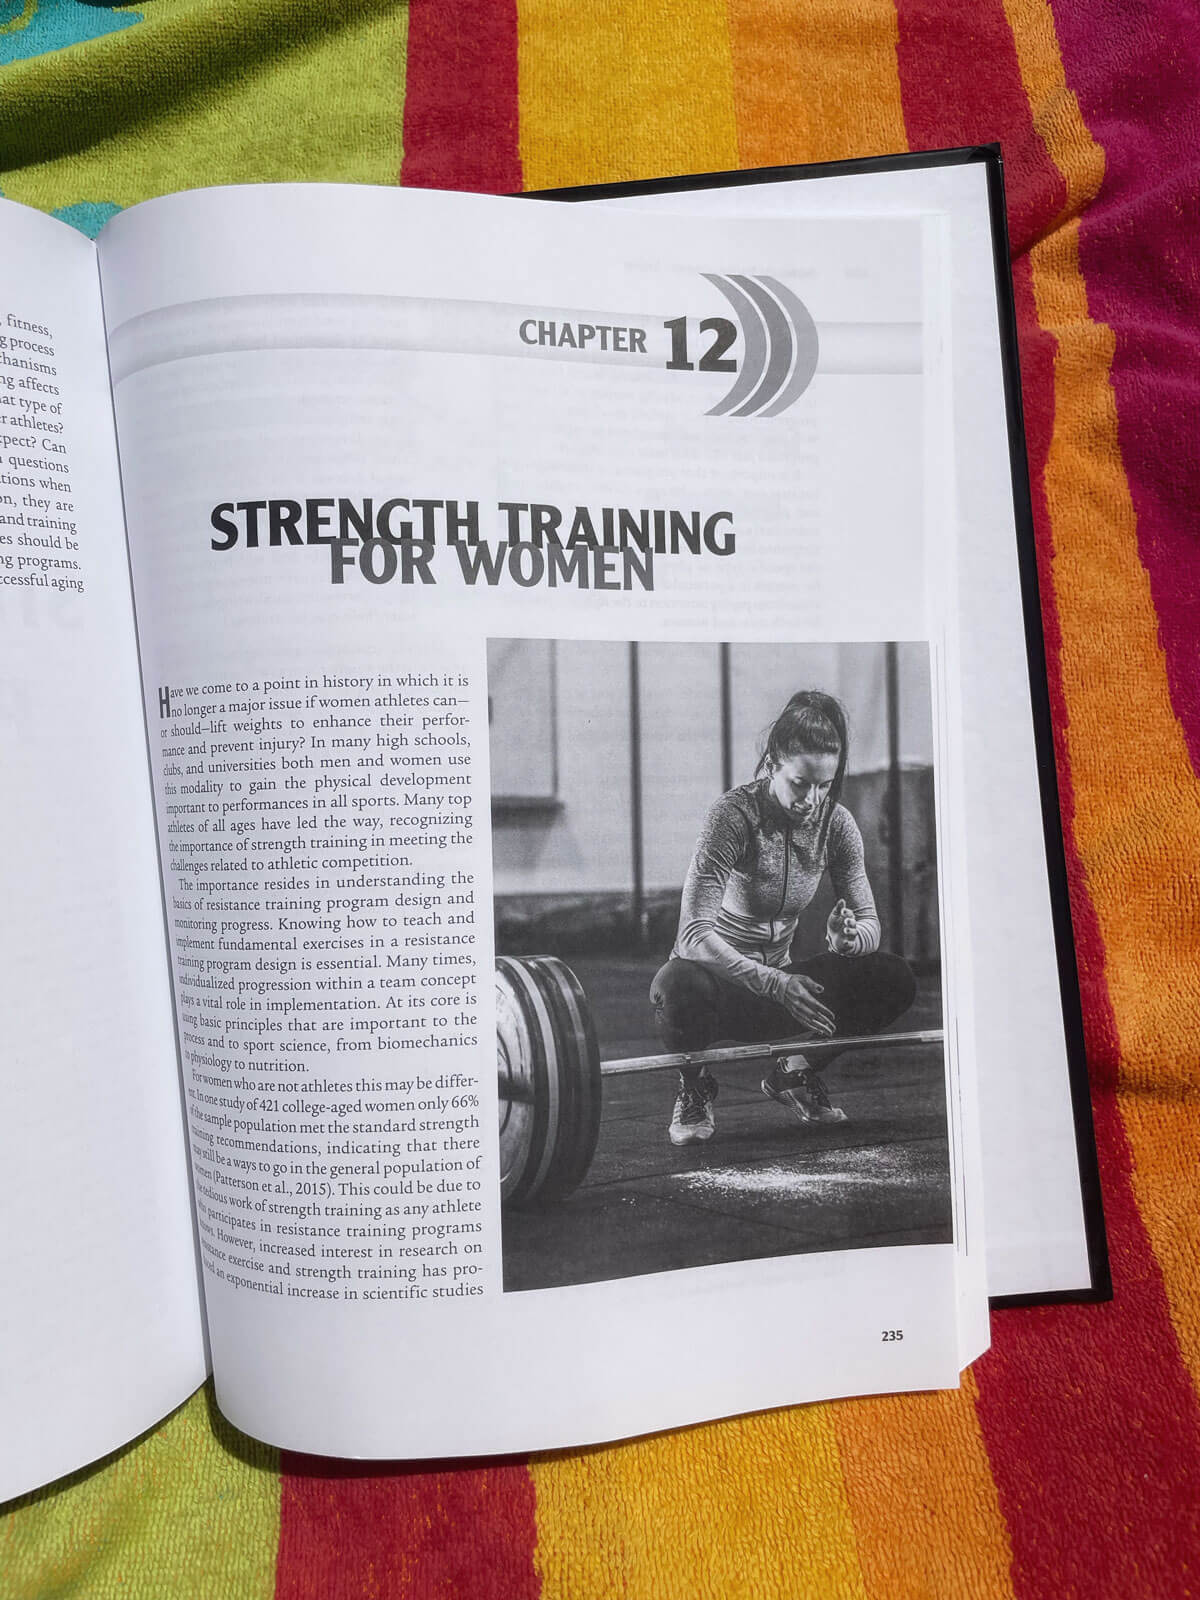 Science and Practice of Strength Training by Vladimir Zatsiorsky - Chapter 12